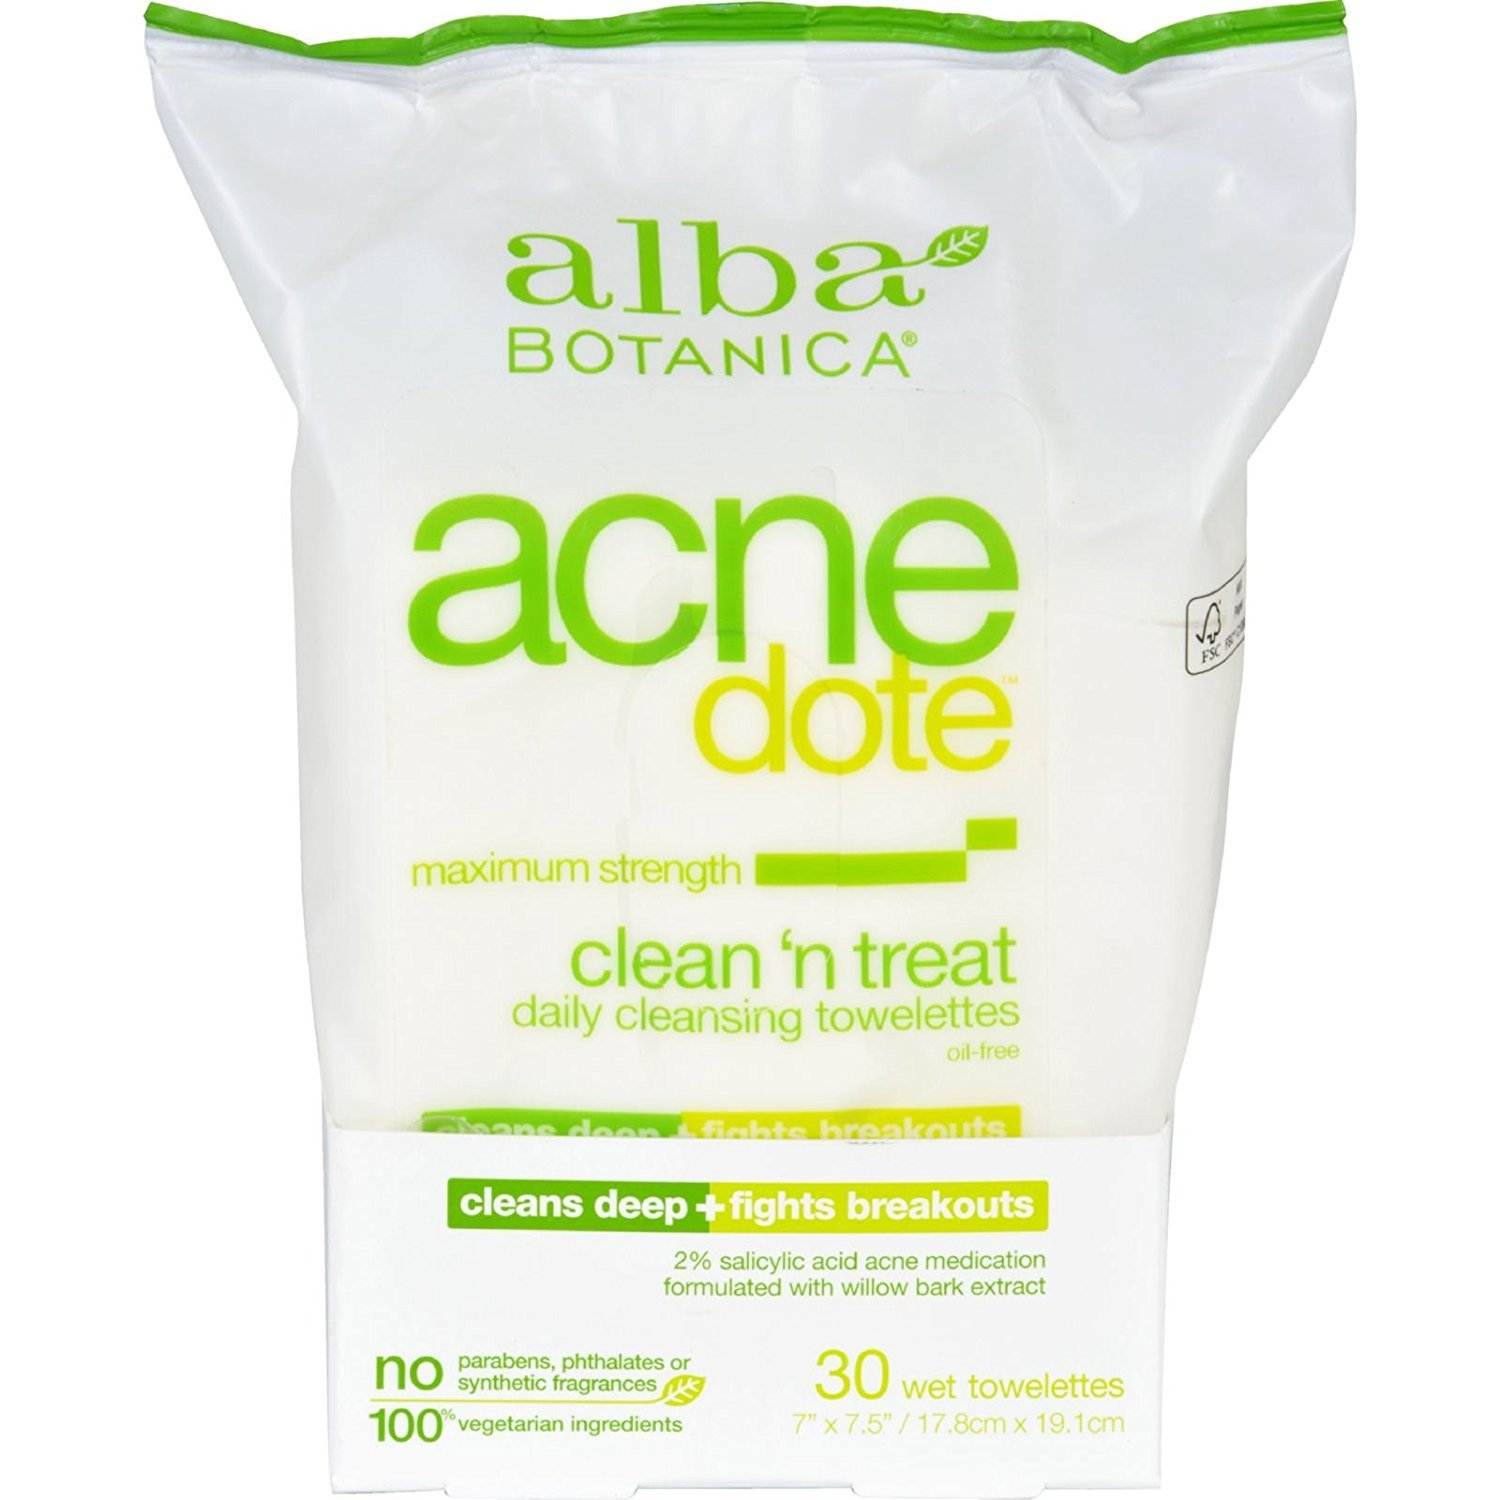 Pack of 1 x Alba Botanica Acnedote Clean Treat Towel - 30 Pack by Alba Botanica